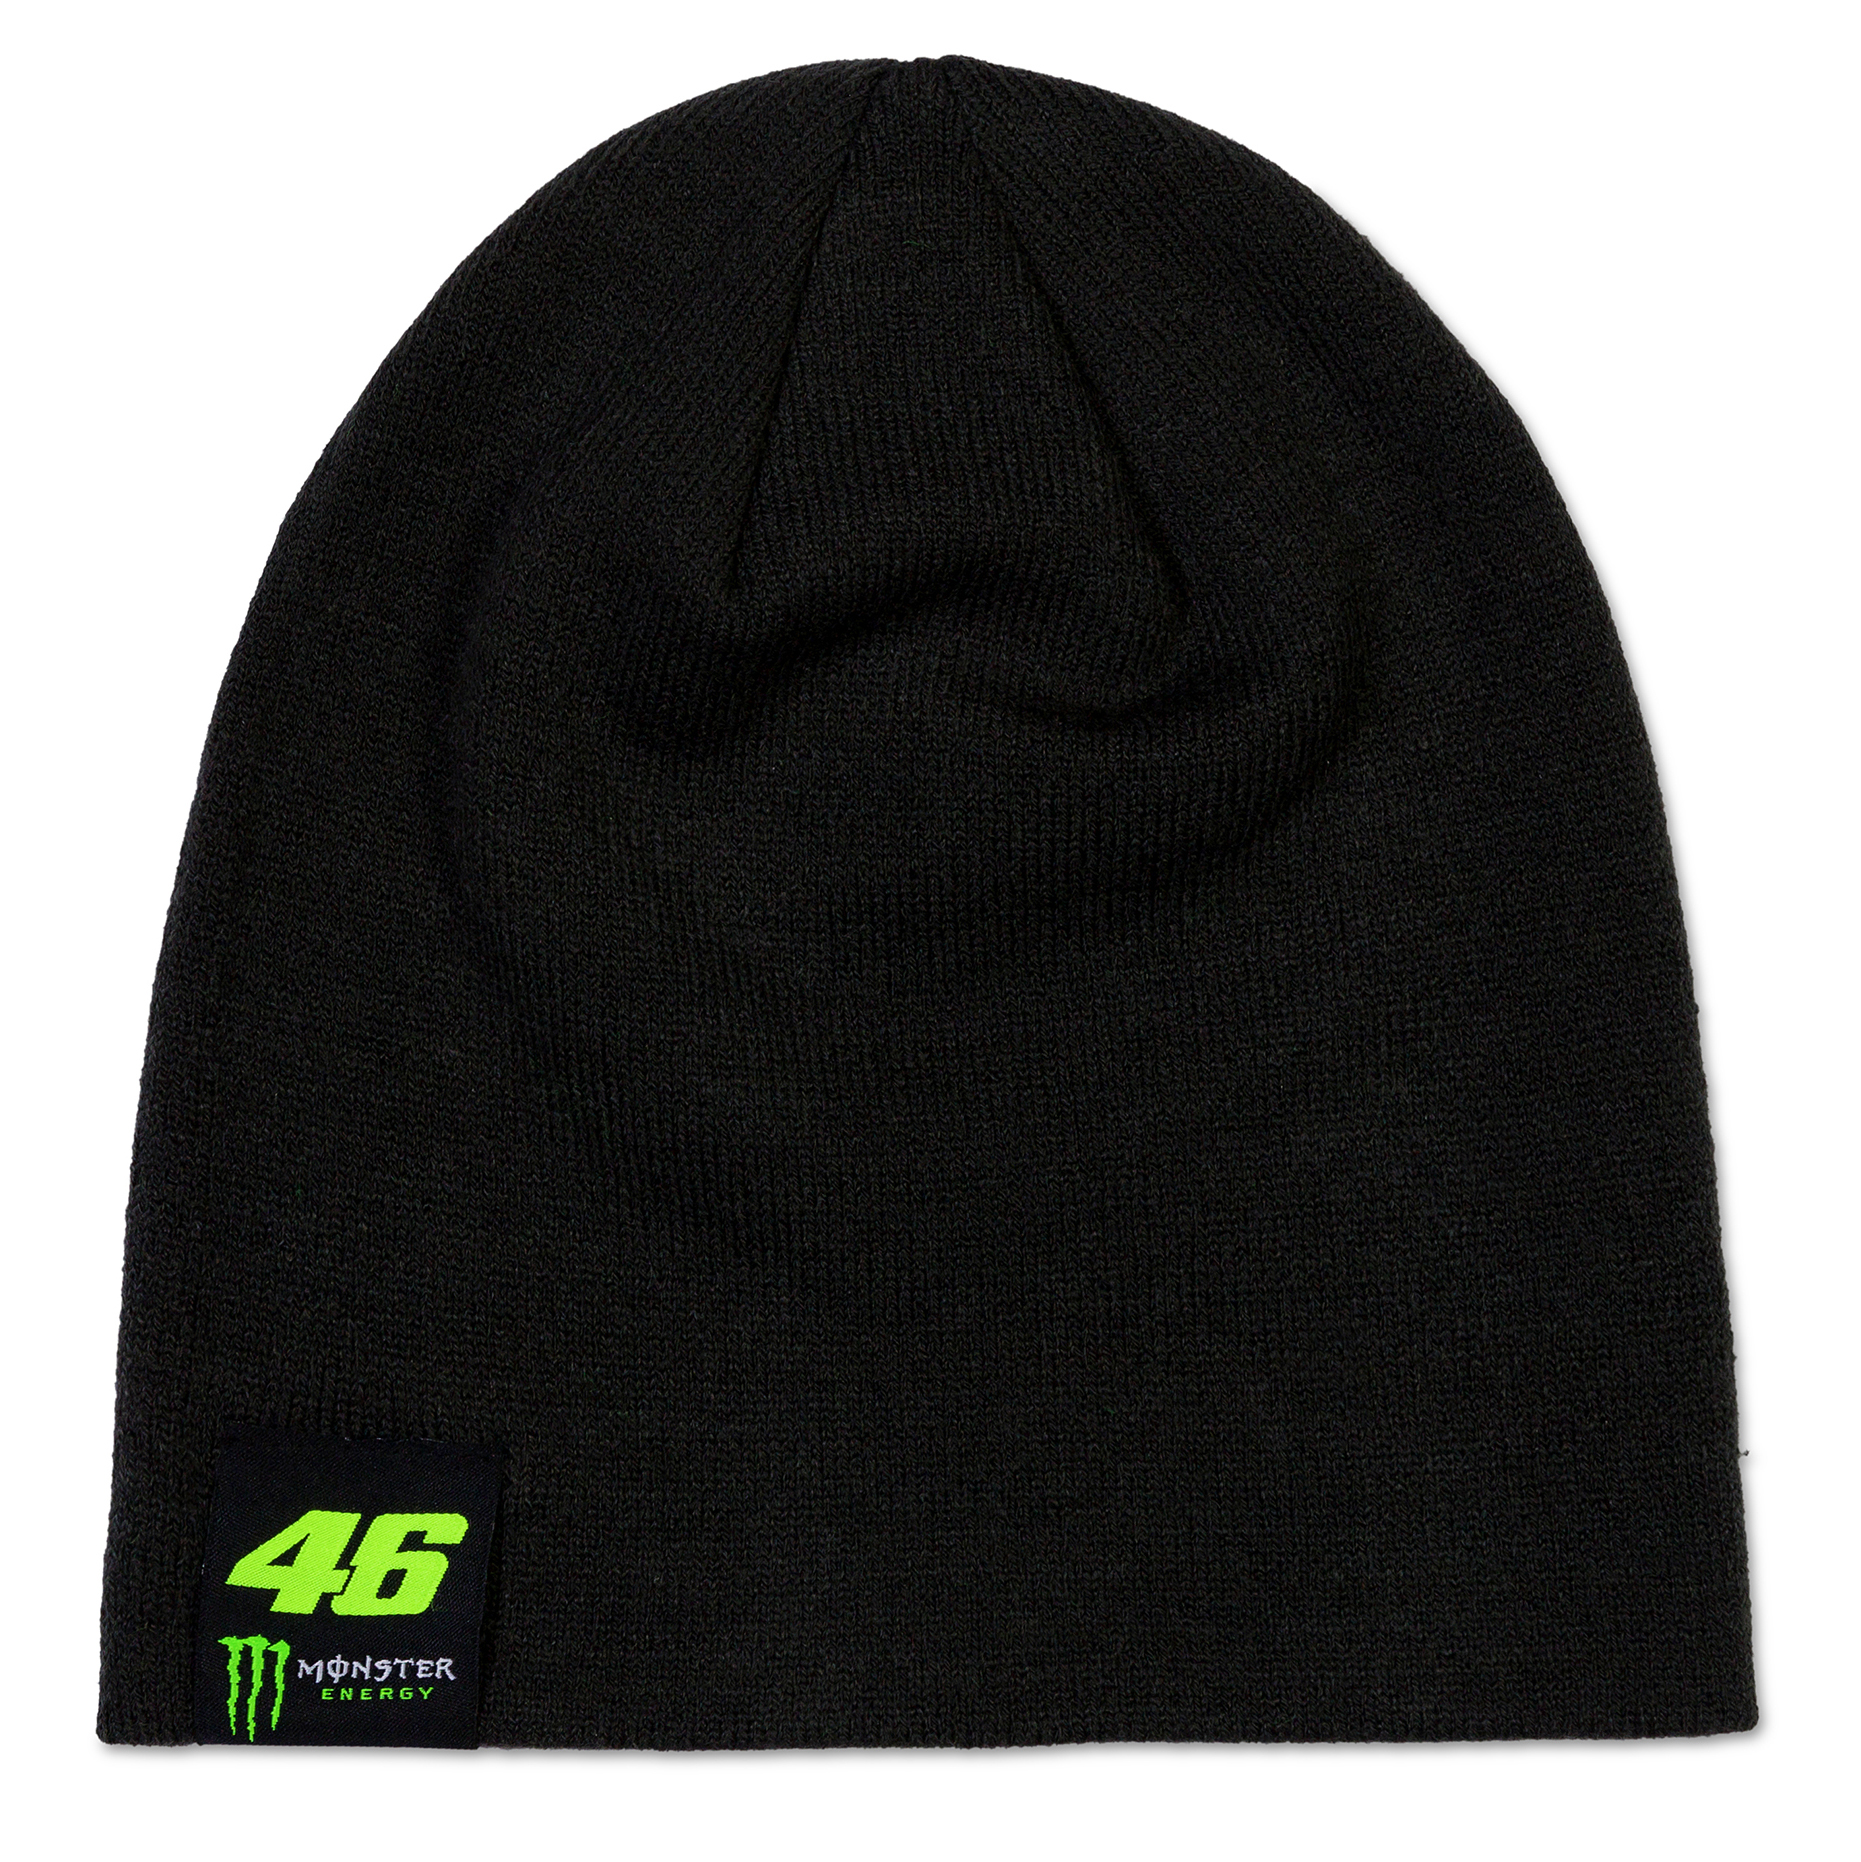 4ed9c563a12 2019 Valentino Rossi VR46 Monster Official Team Beanie Hat Grey Adult One  Size